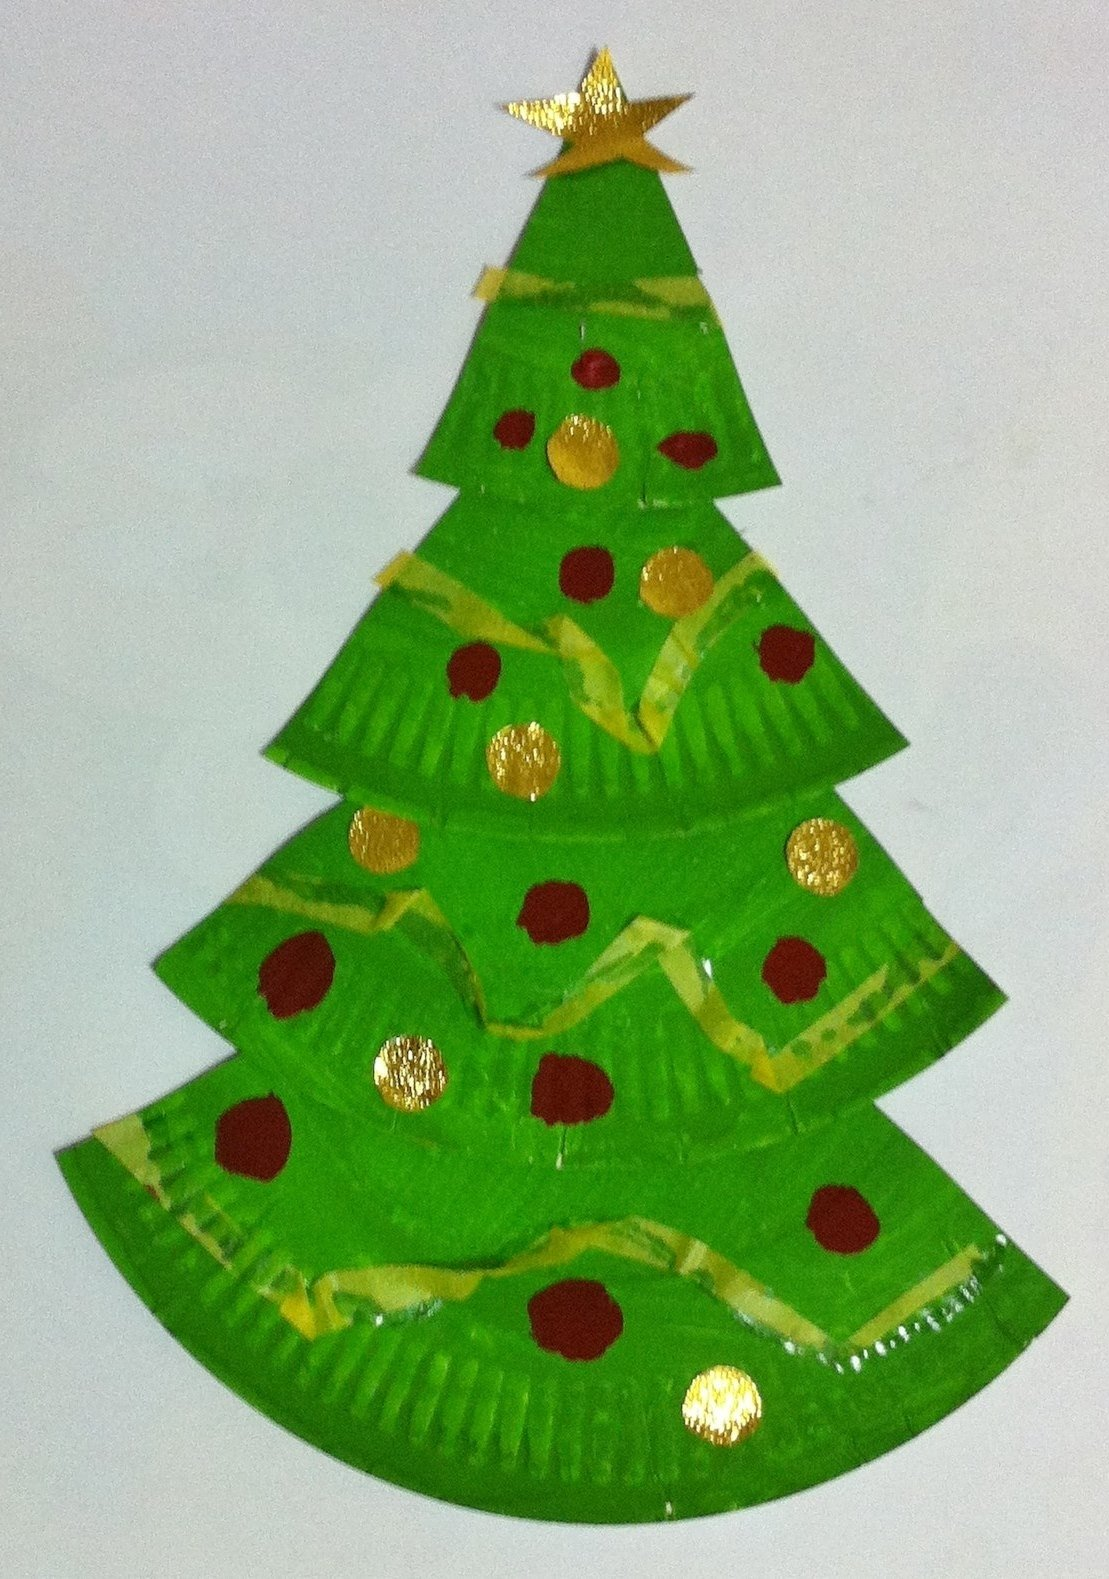 10 Most Popular Homemade Christmas Ornament Ideas For Kids easy paper christmas crafts kids find craft ideas 6 2020